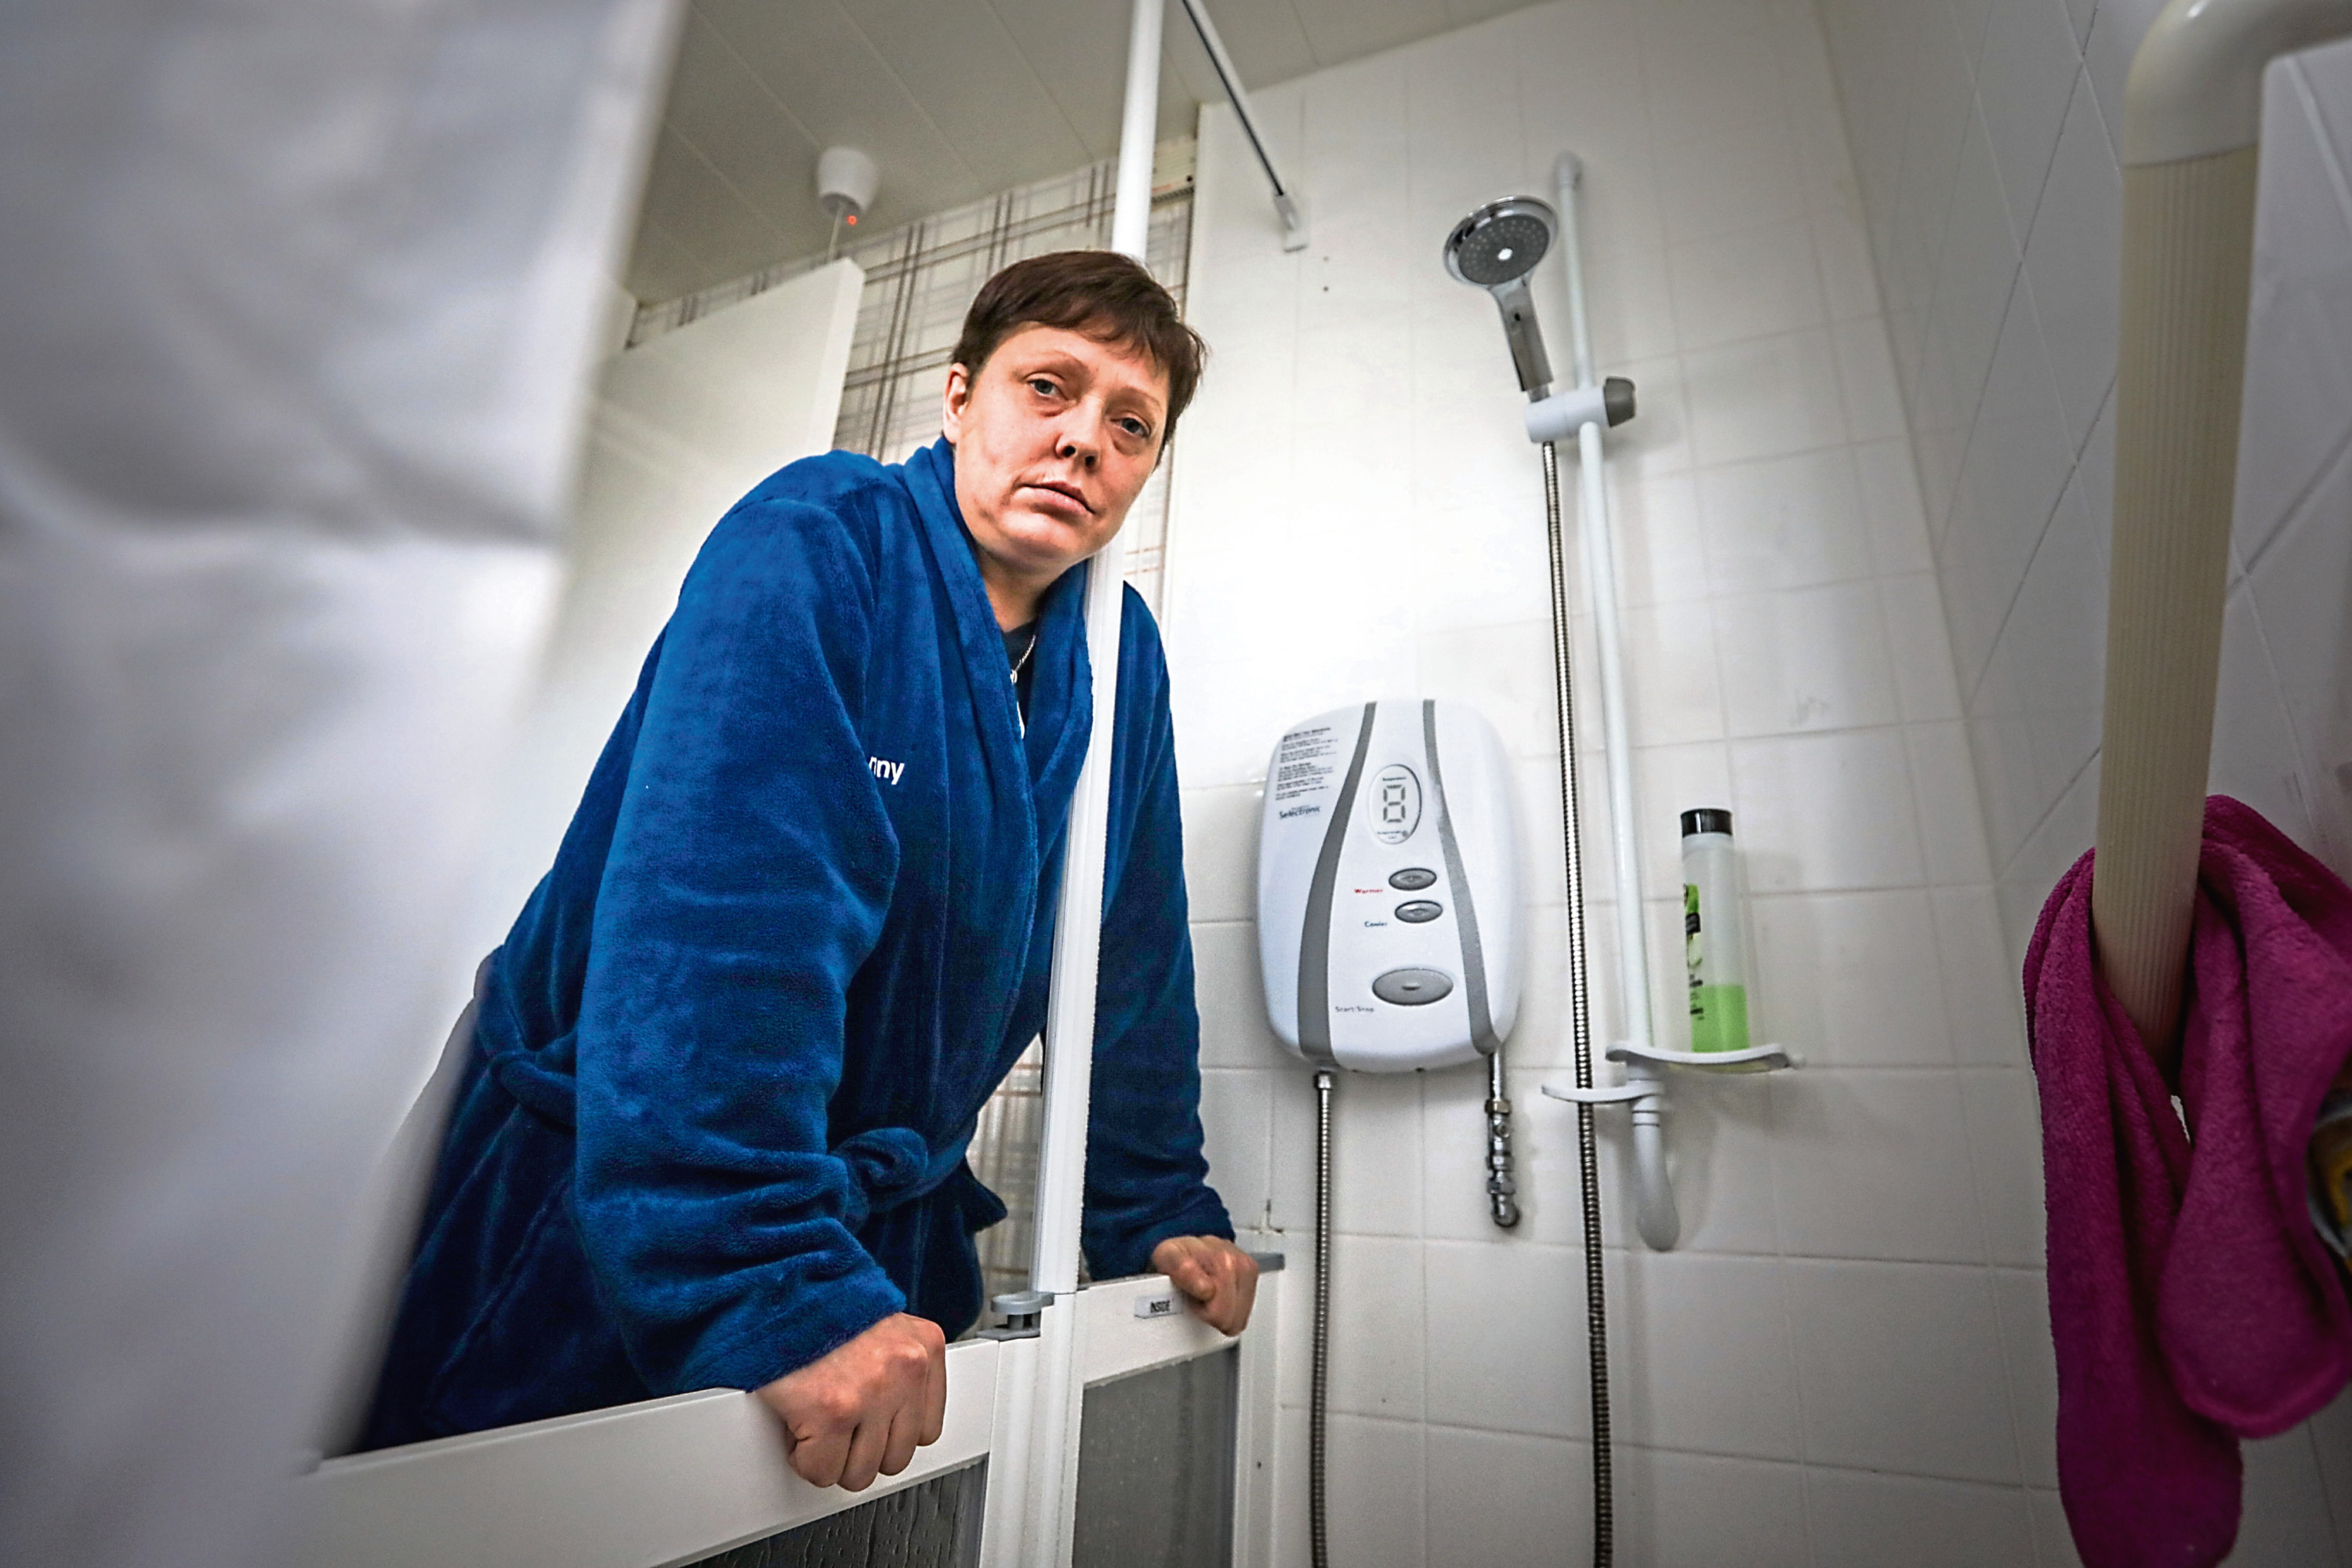 Kerry Bonella is having issues with her council-flat shower.